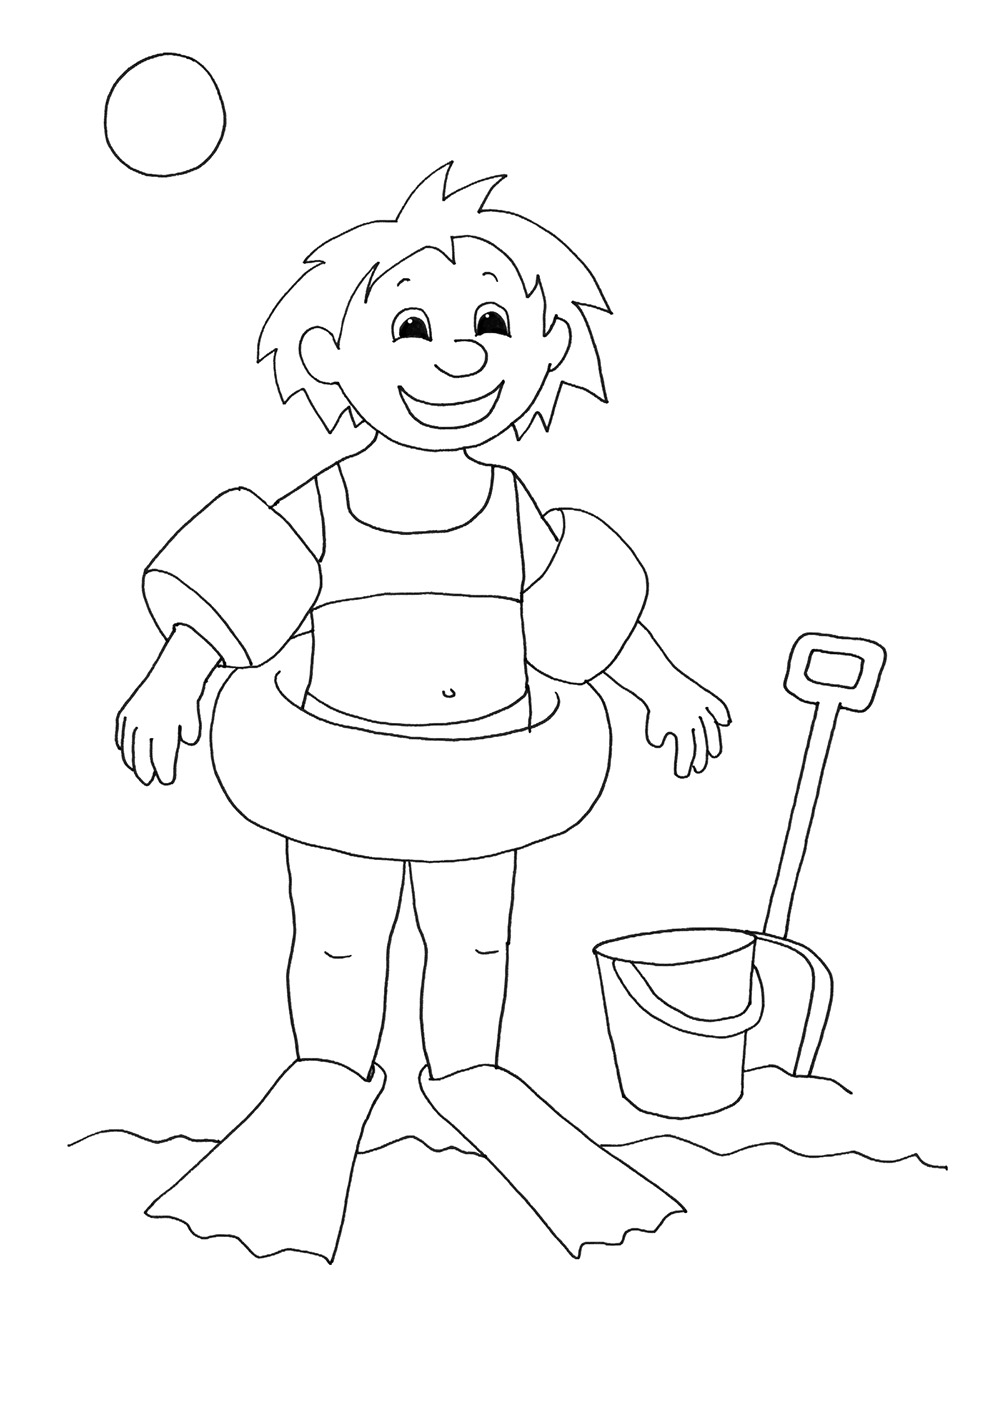 free coloring page sheets for kids girl beach - Coloring Pages For Girl